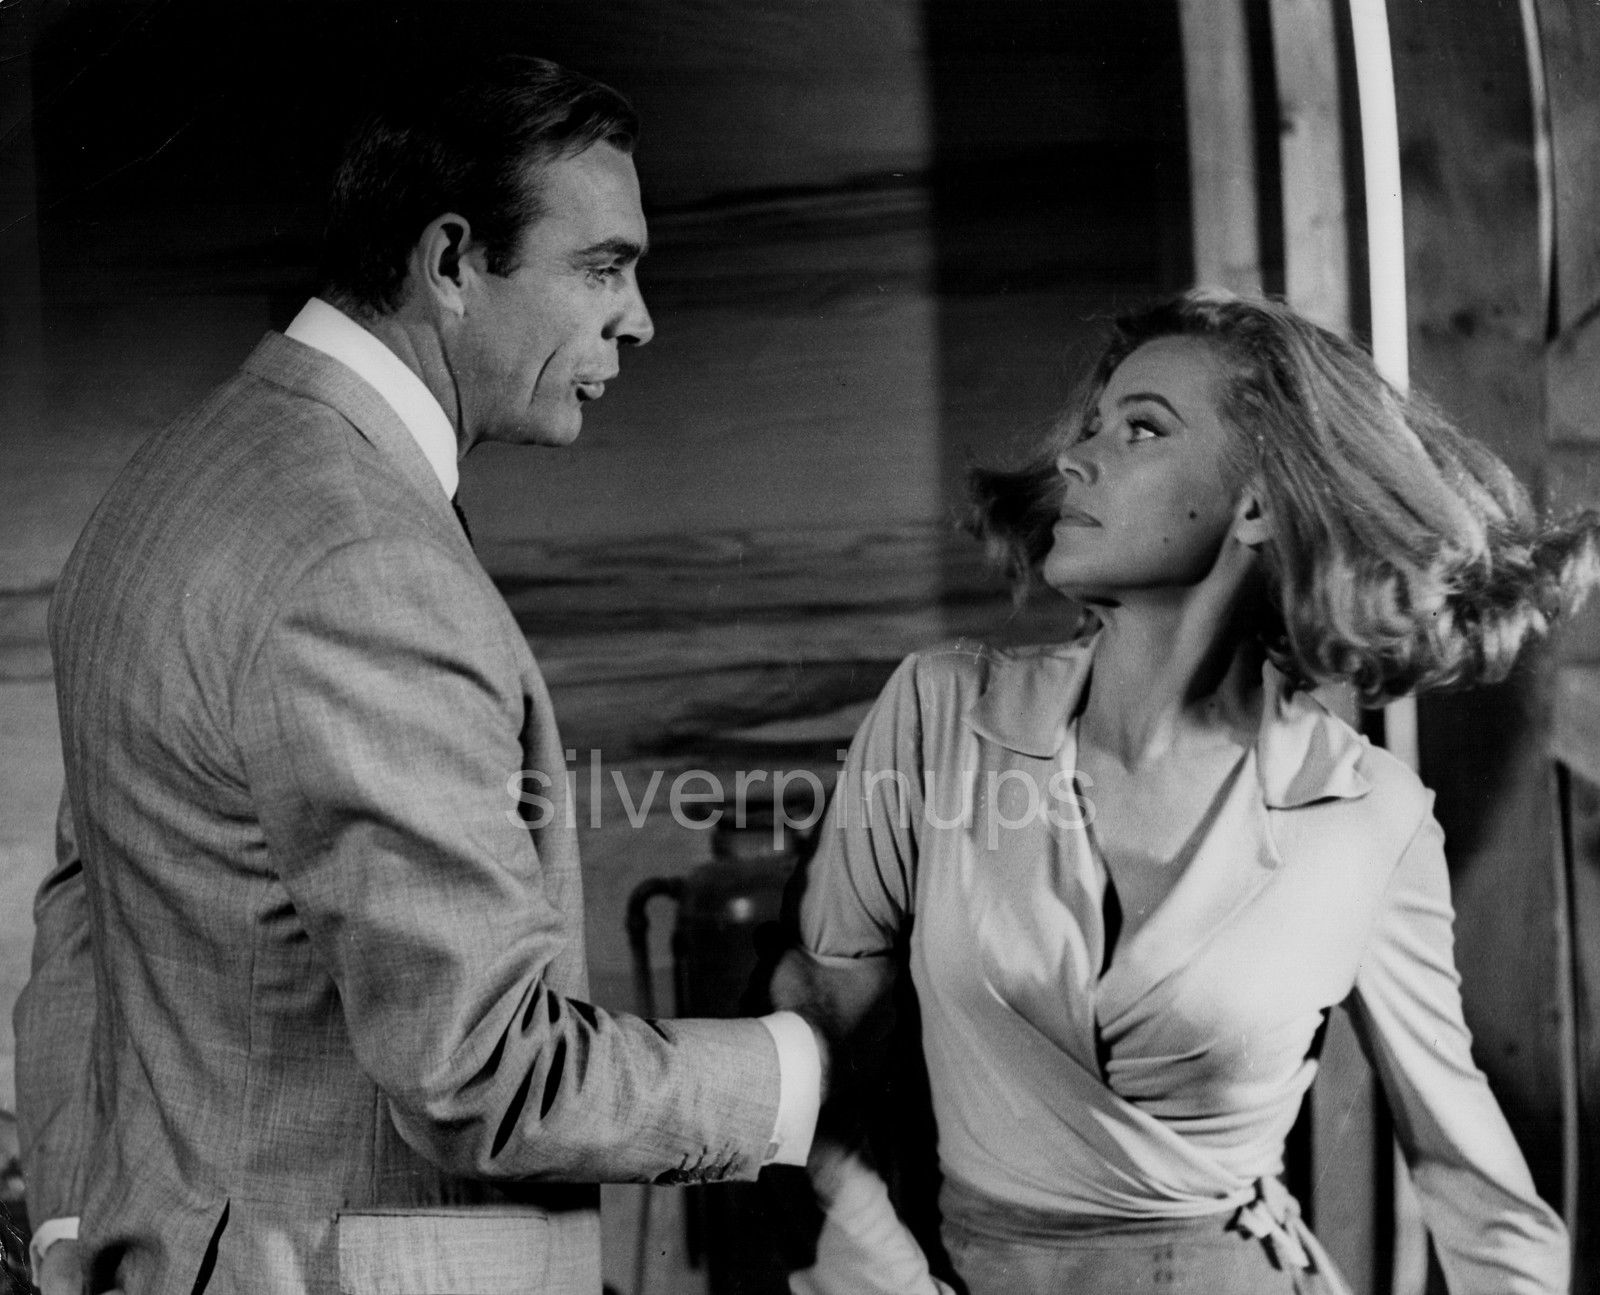 2 Orig James Bond Sean Connery Honor Blackman Scene Portraits Goldfinger Silverpinups